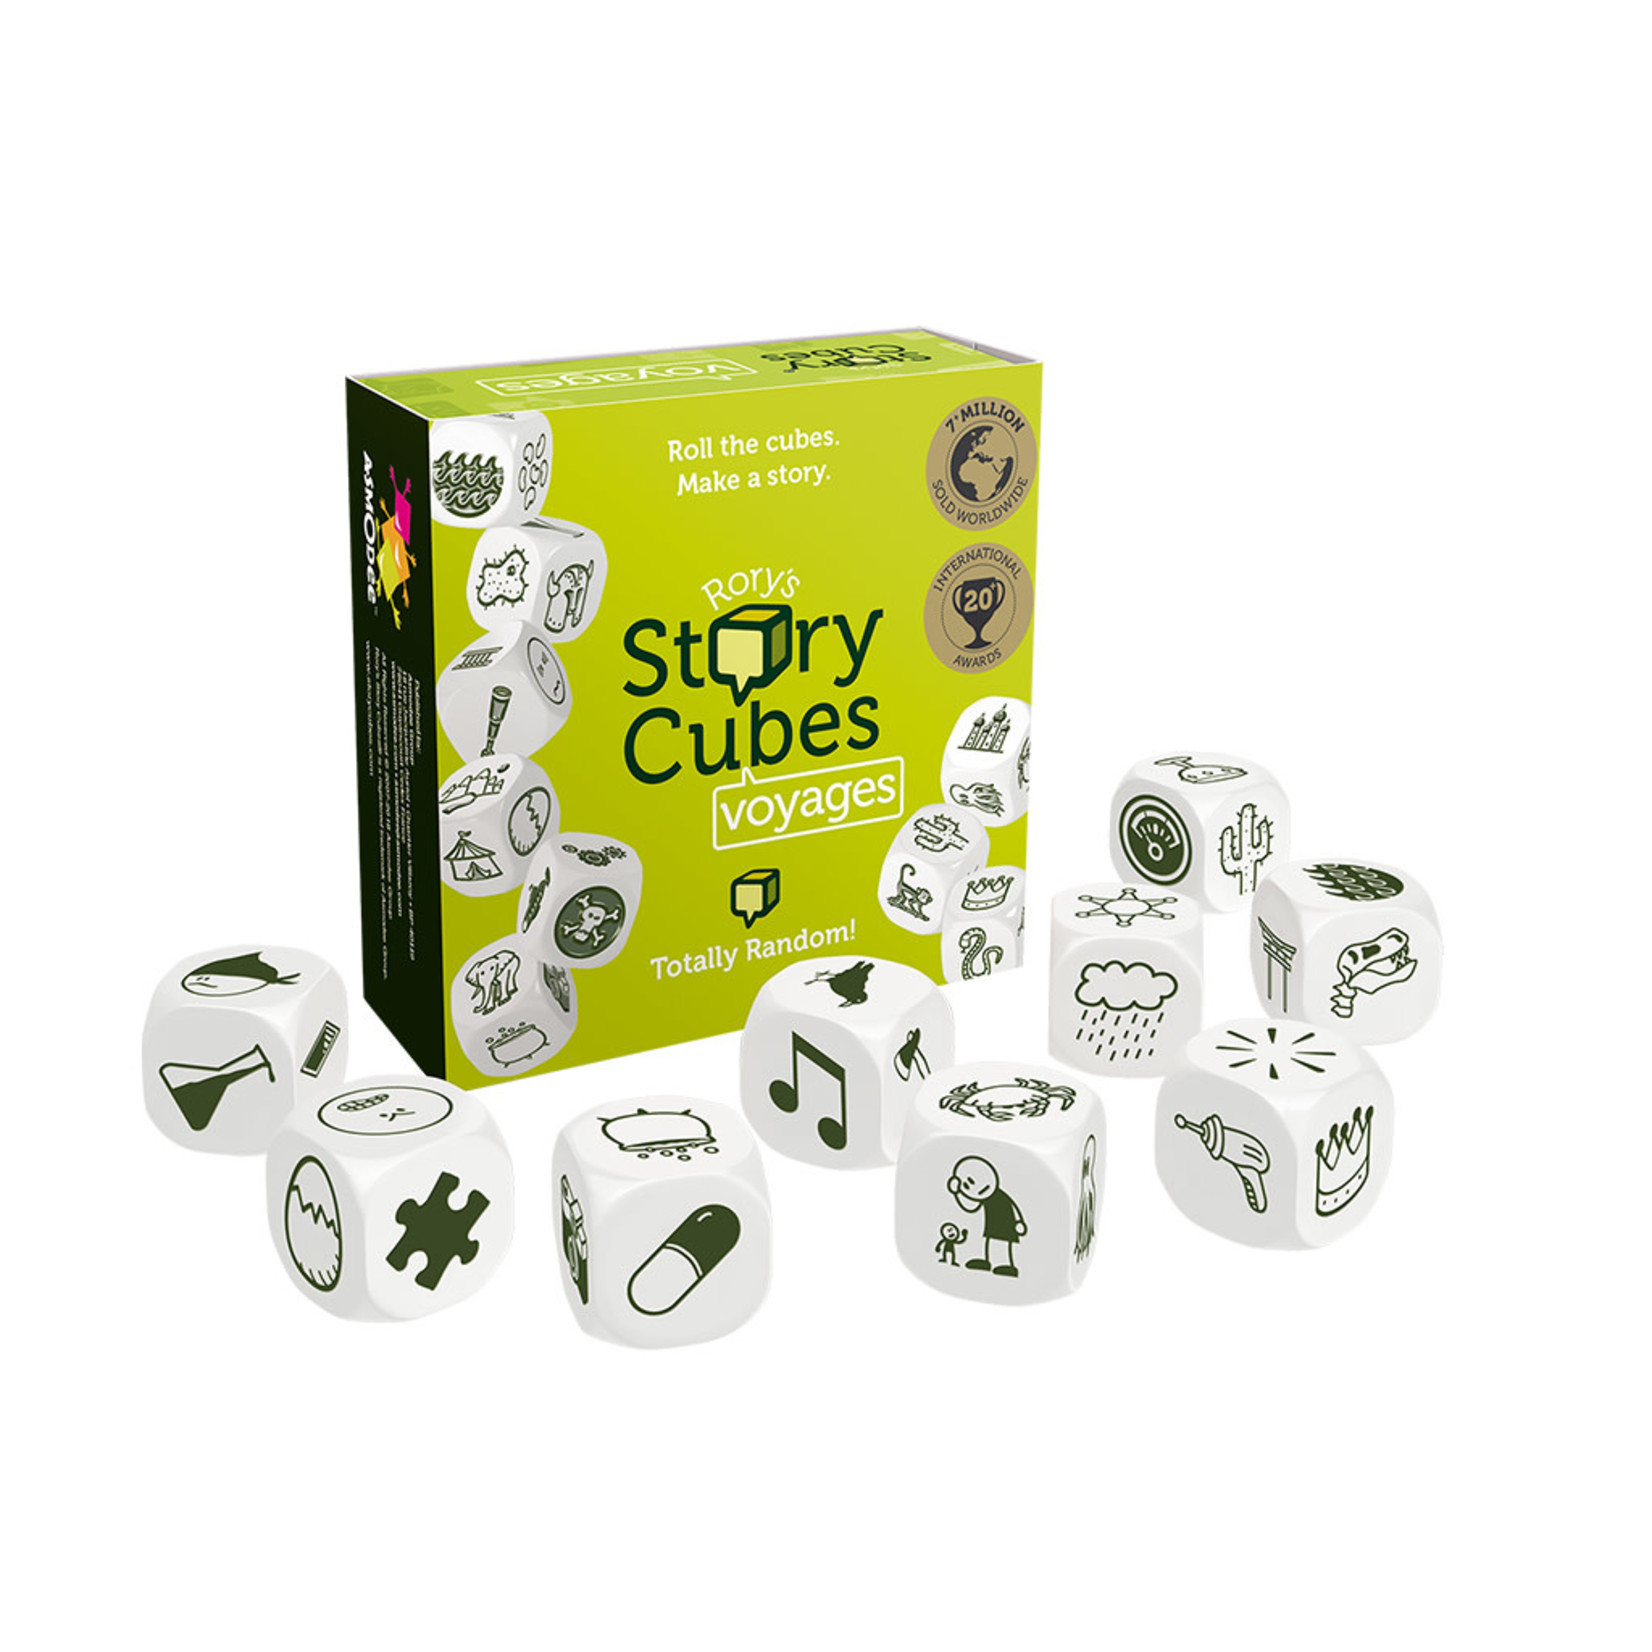 Asmodee Rory's Story Cubes Voyages